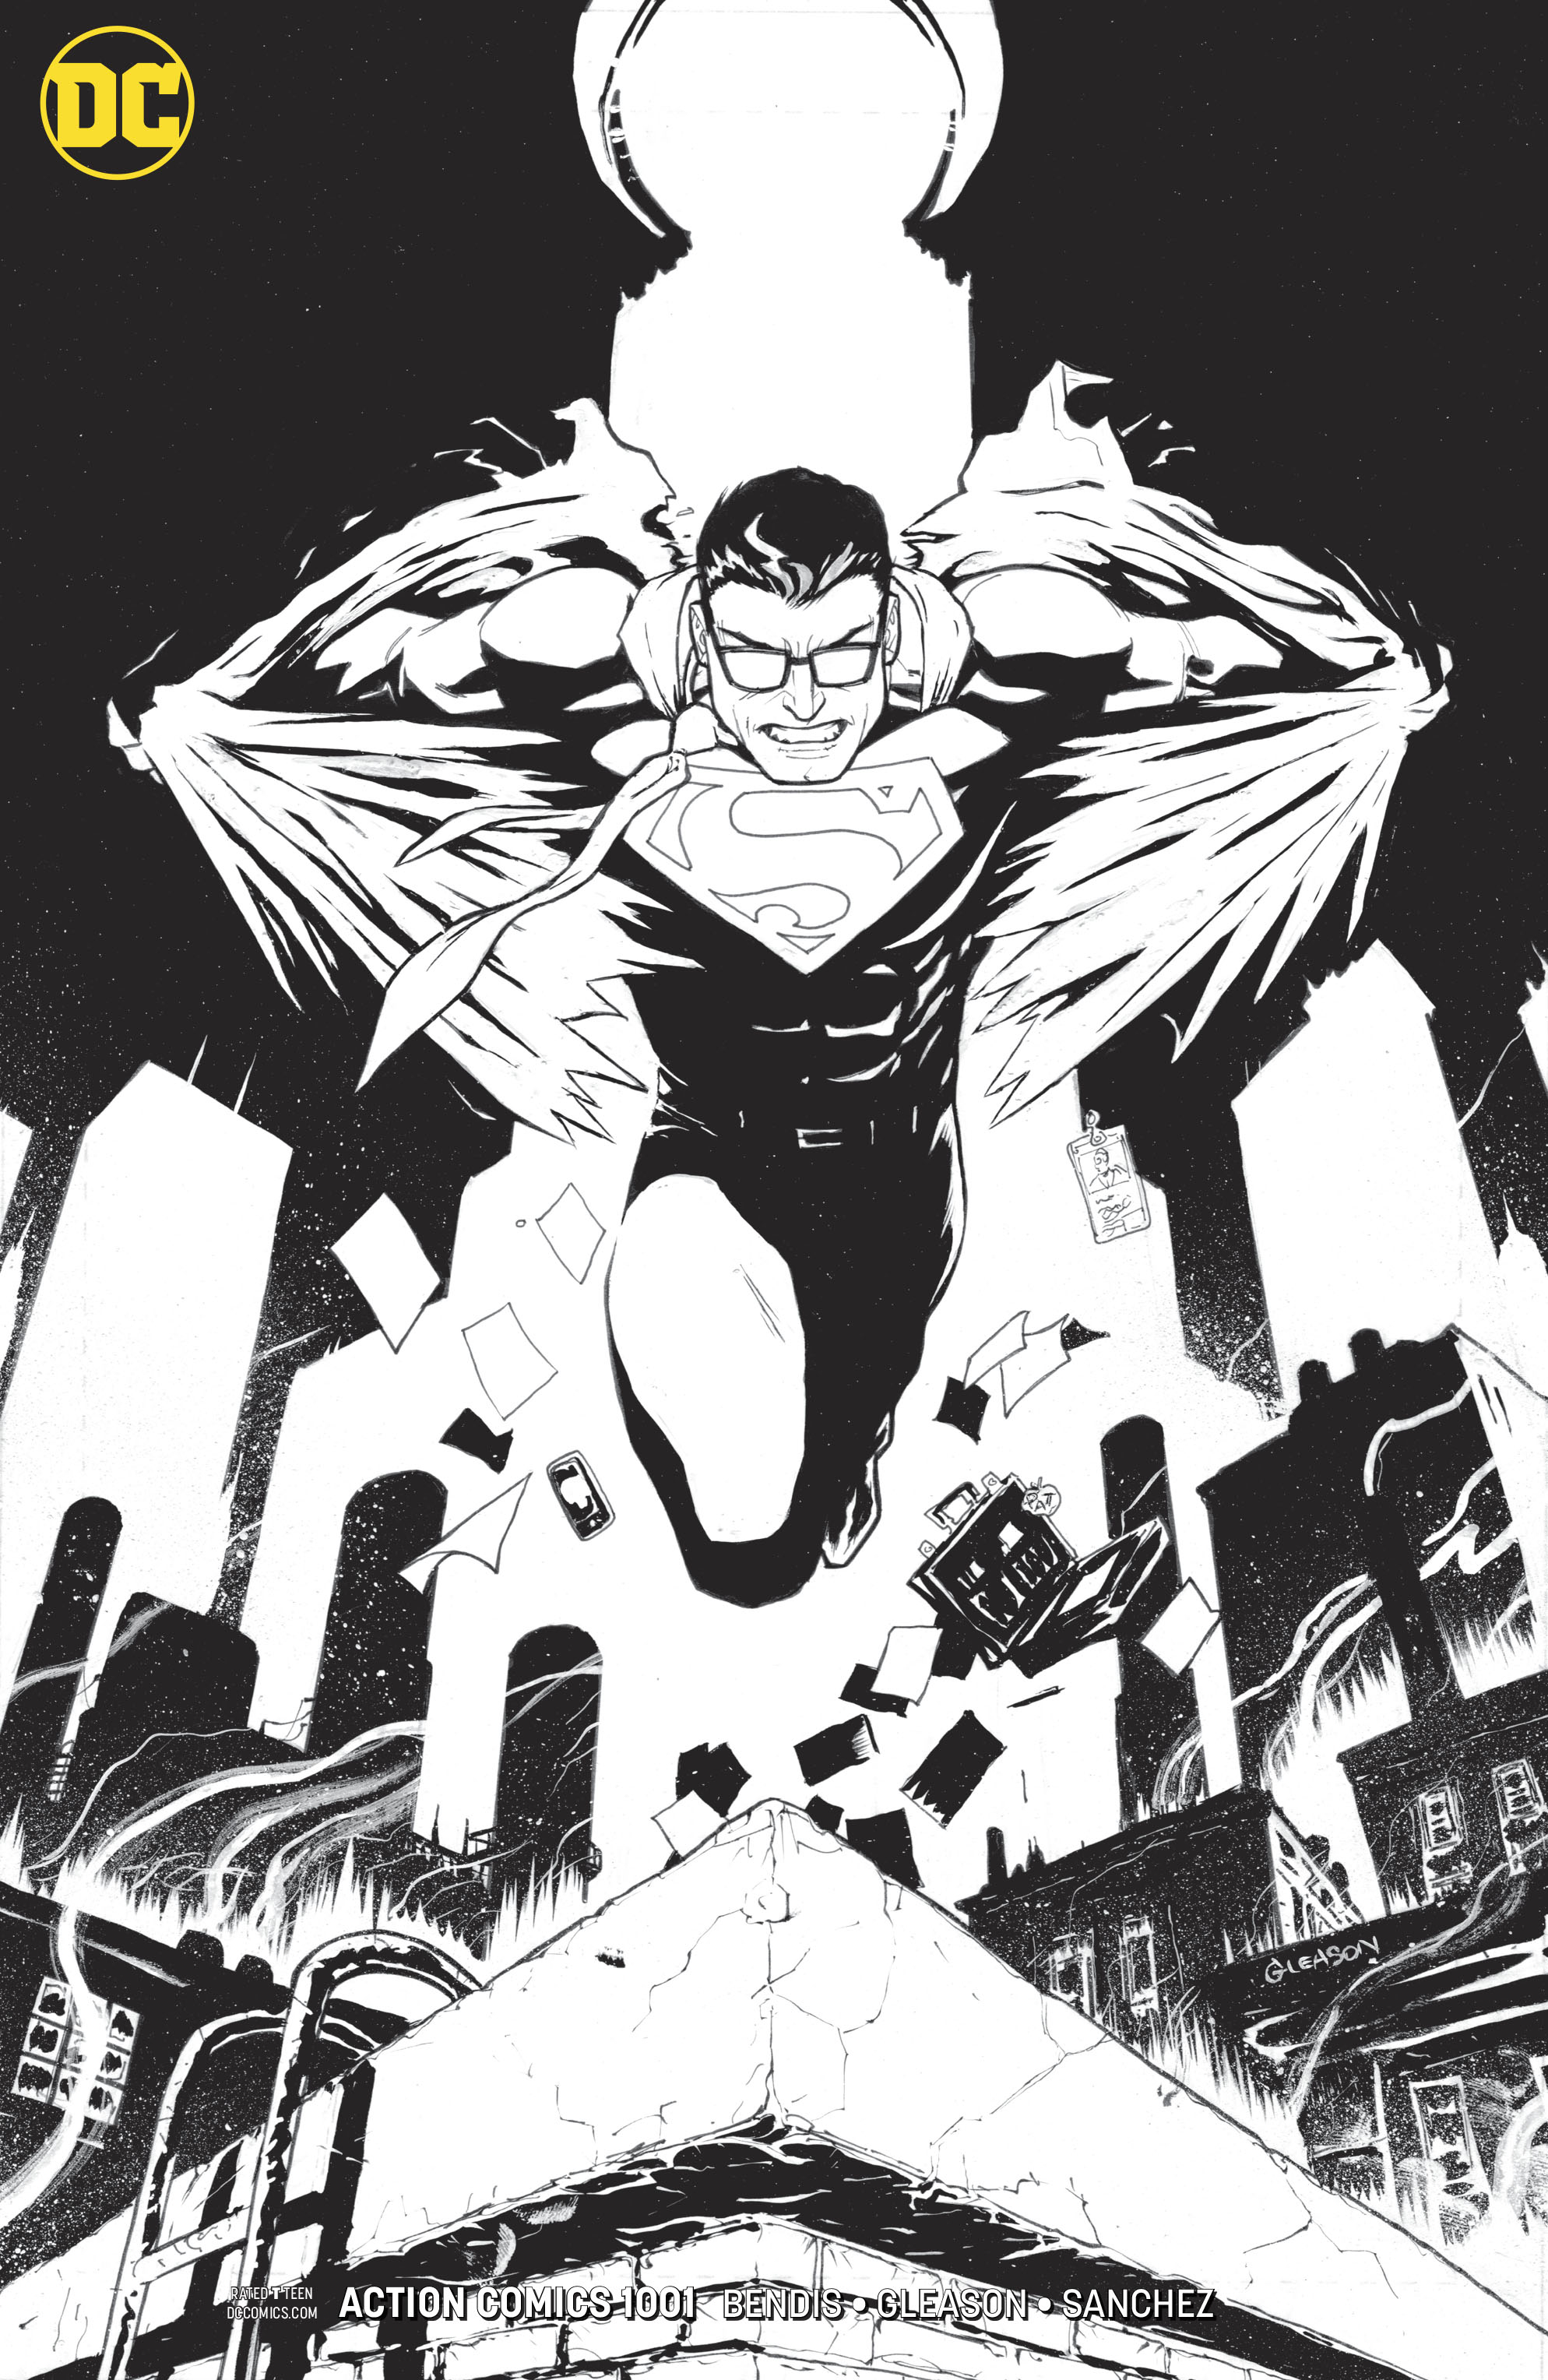 ACTION COMICS #1001 INKS ONLY VAR ED